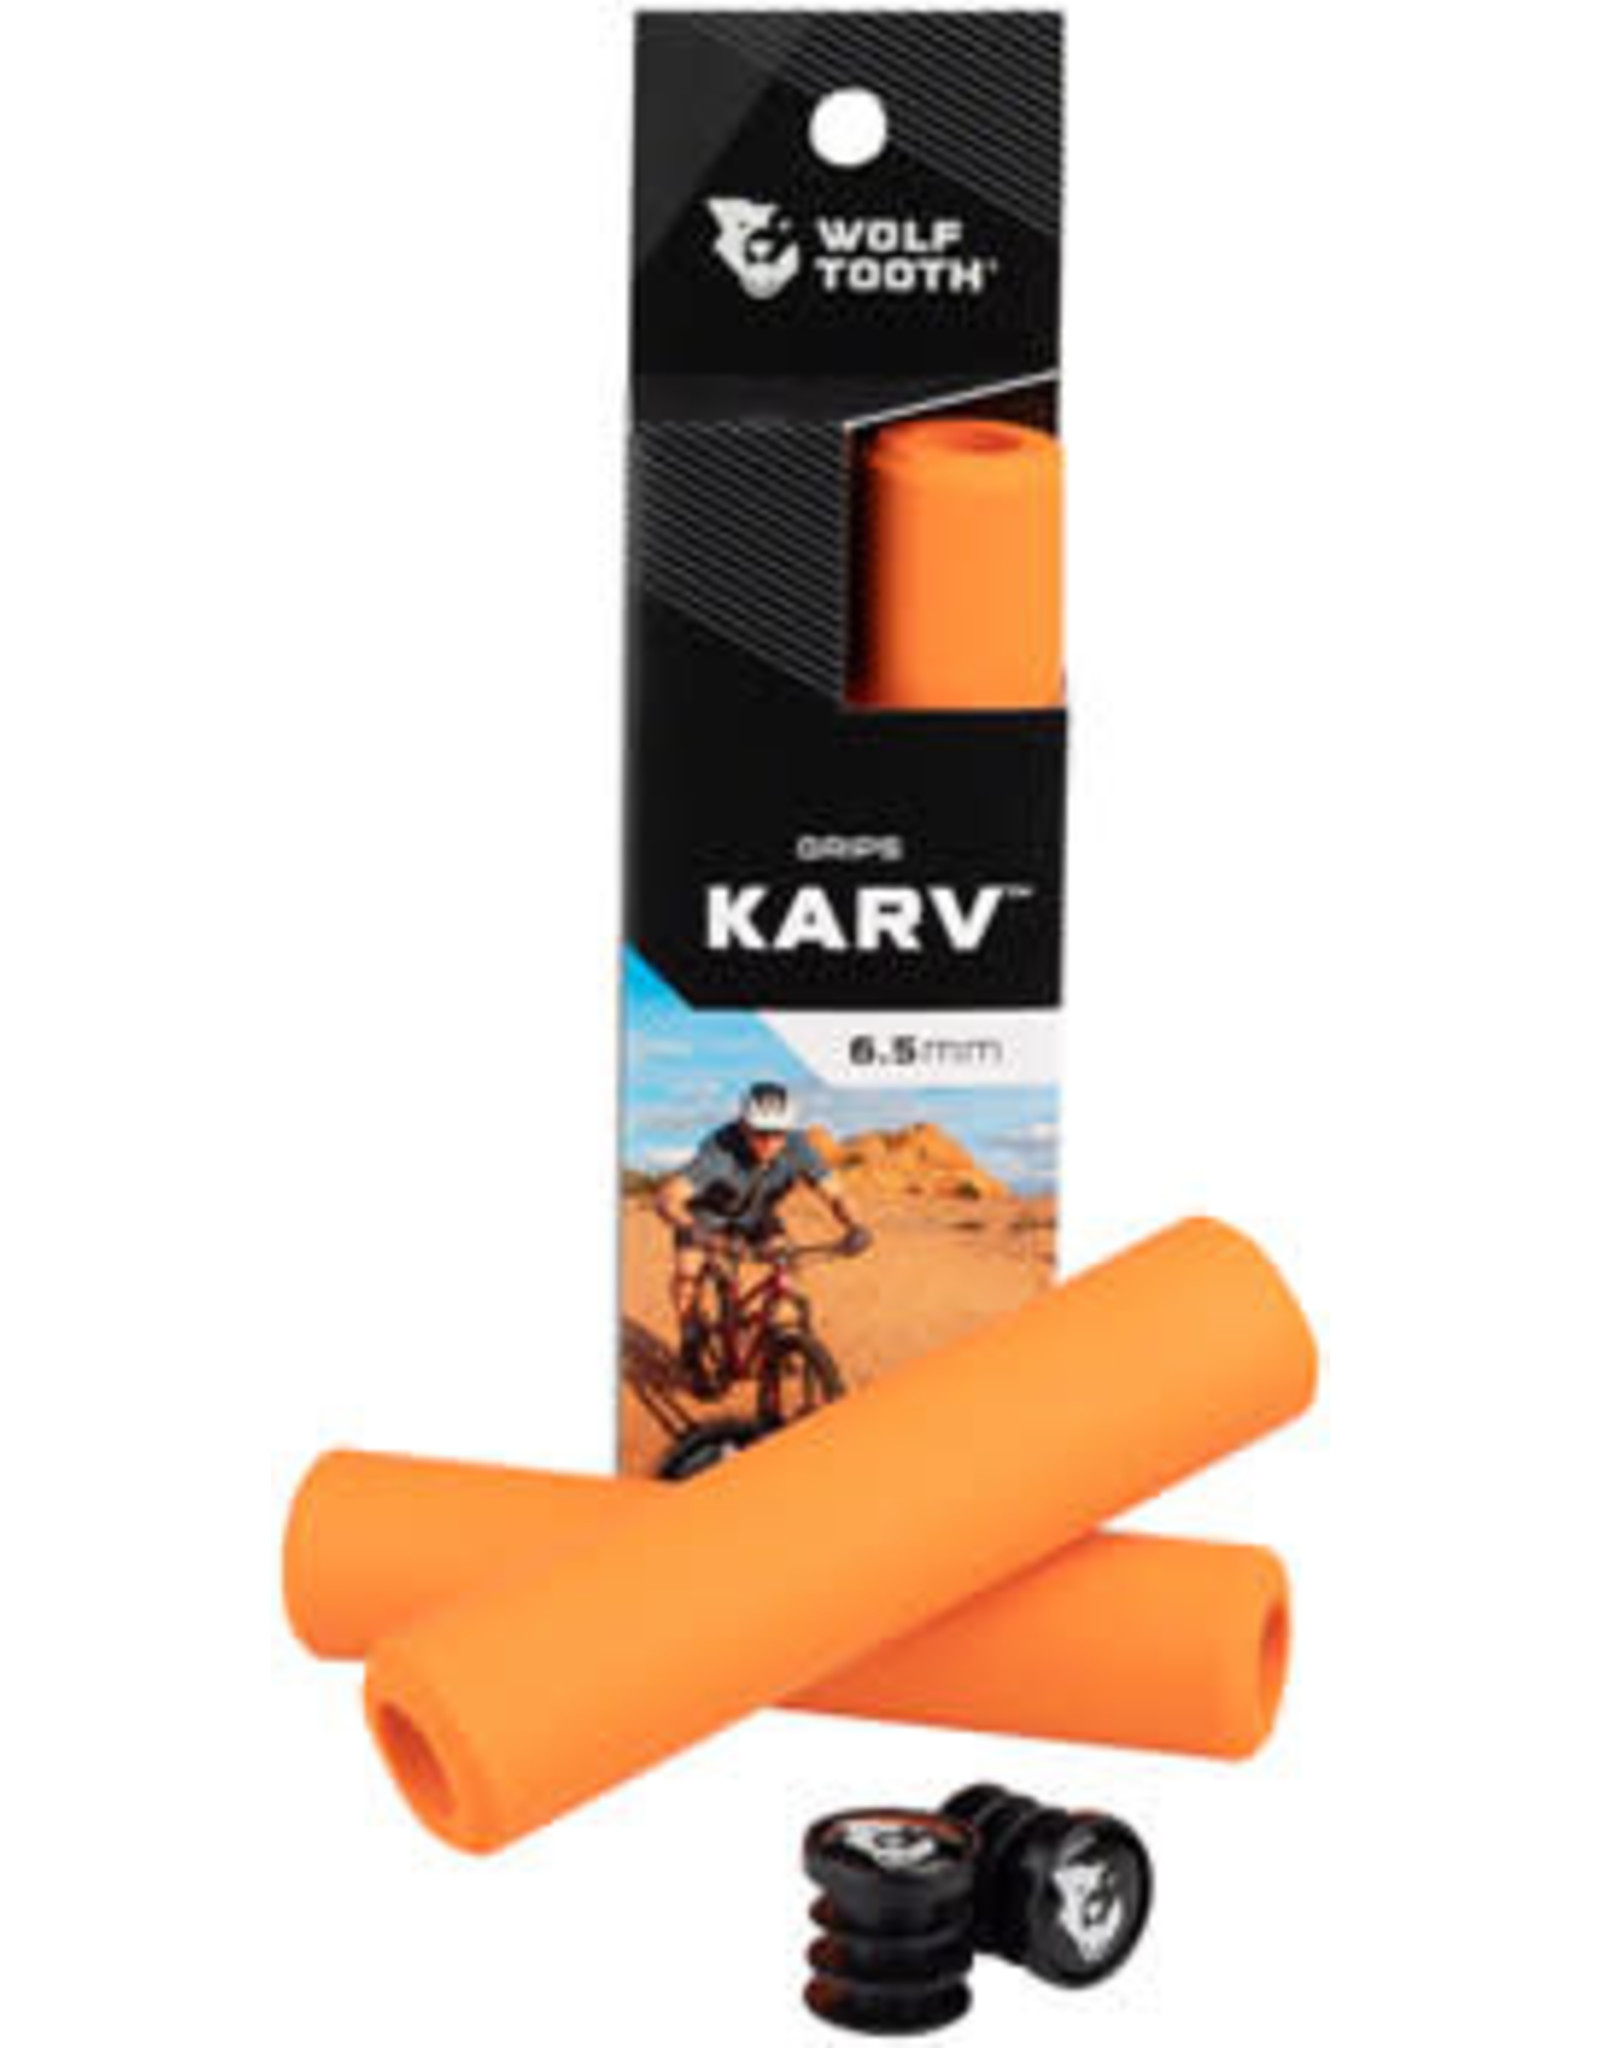 Wolf Tooth Components Wolf Tooth Karv Grips - Orange